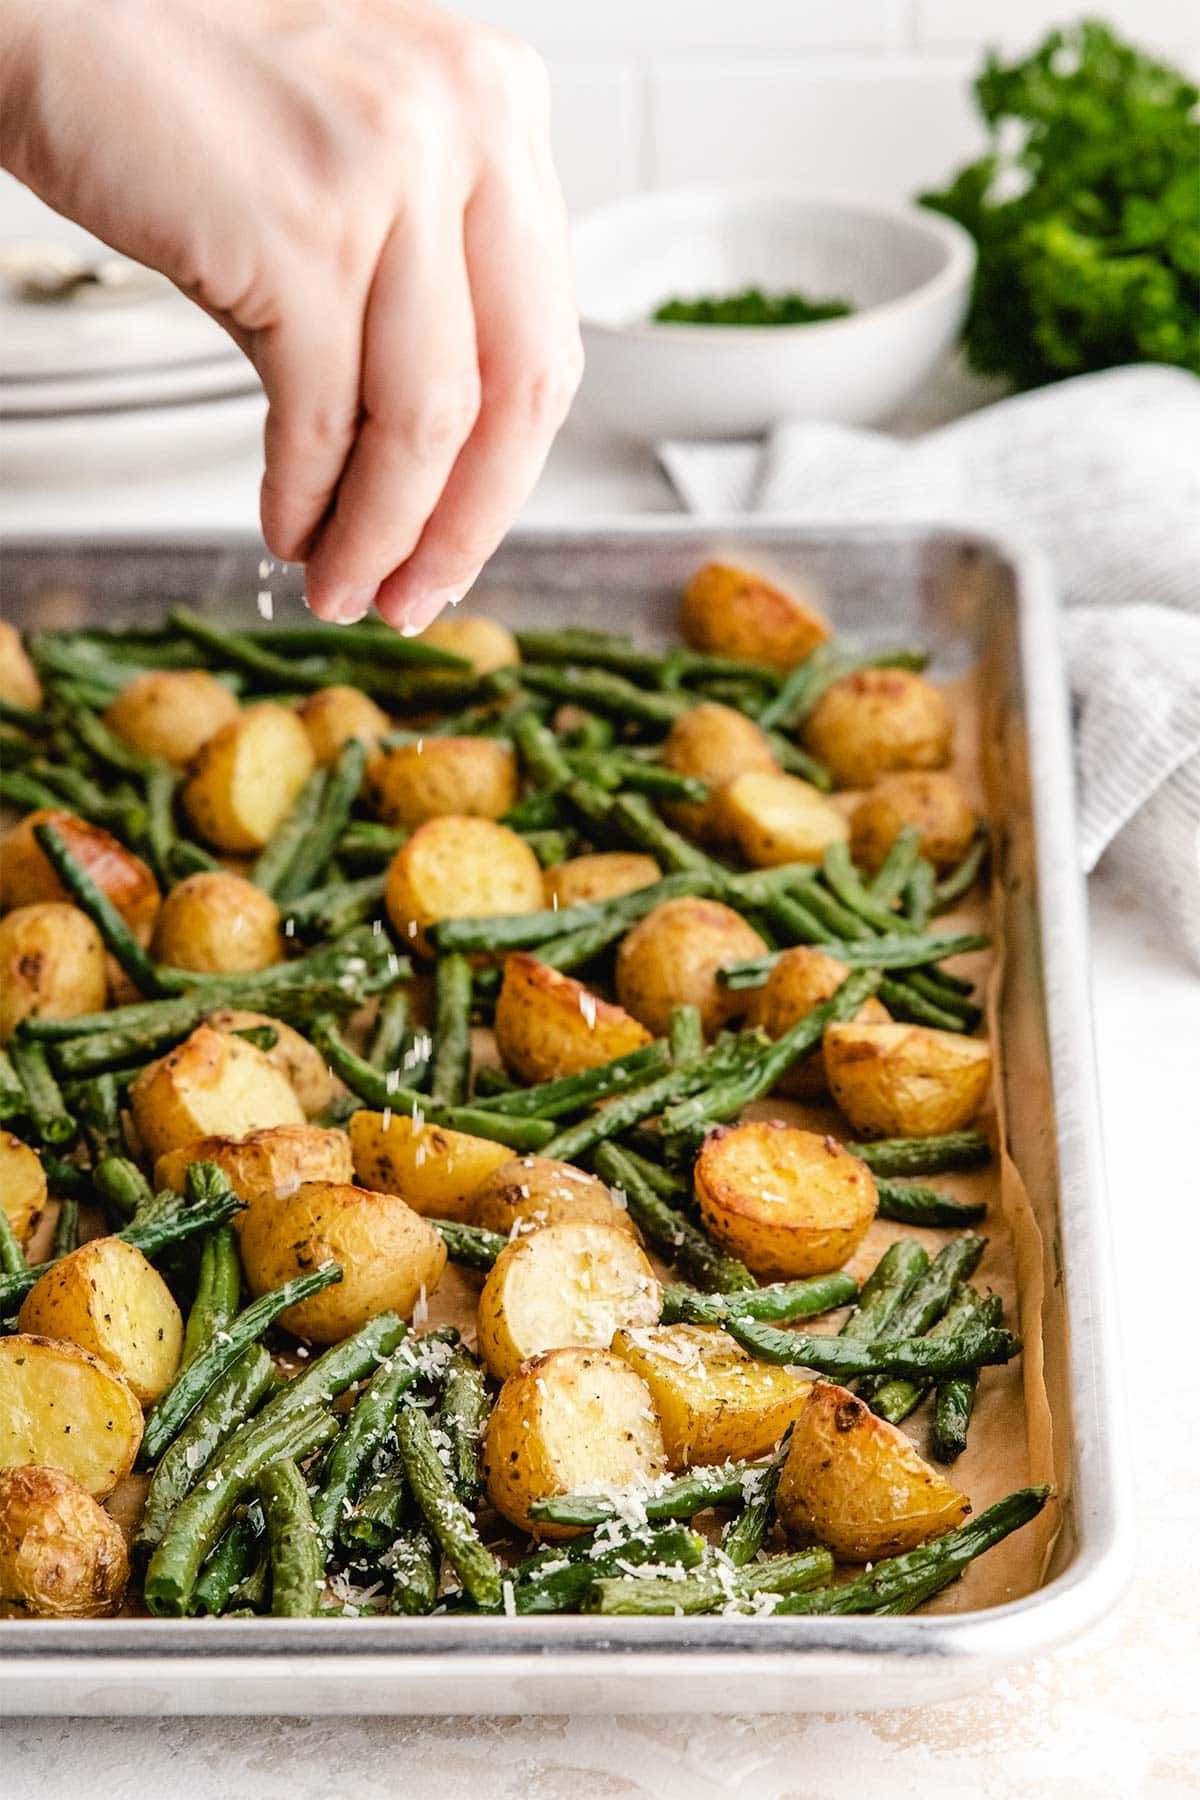 Sprinkling finely grated parmesan cheese onto roasted potatoes and green beans on a sheet pan.